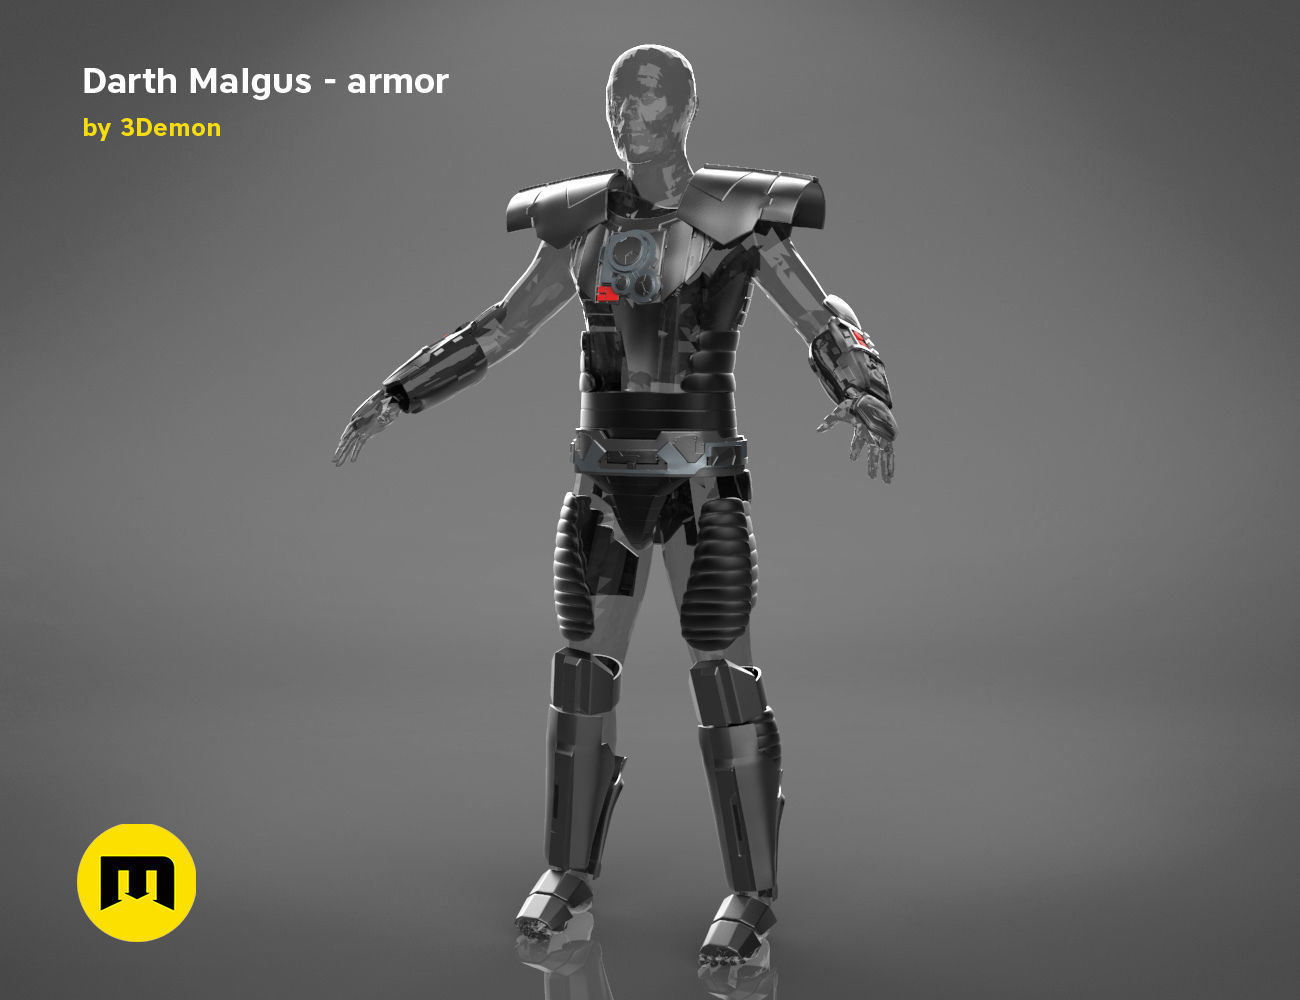 Darth Malgus armor - Star Wars